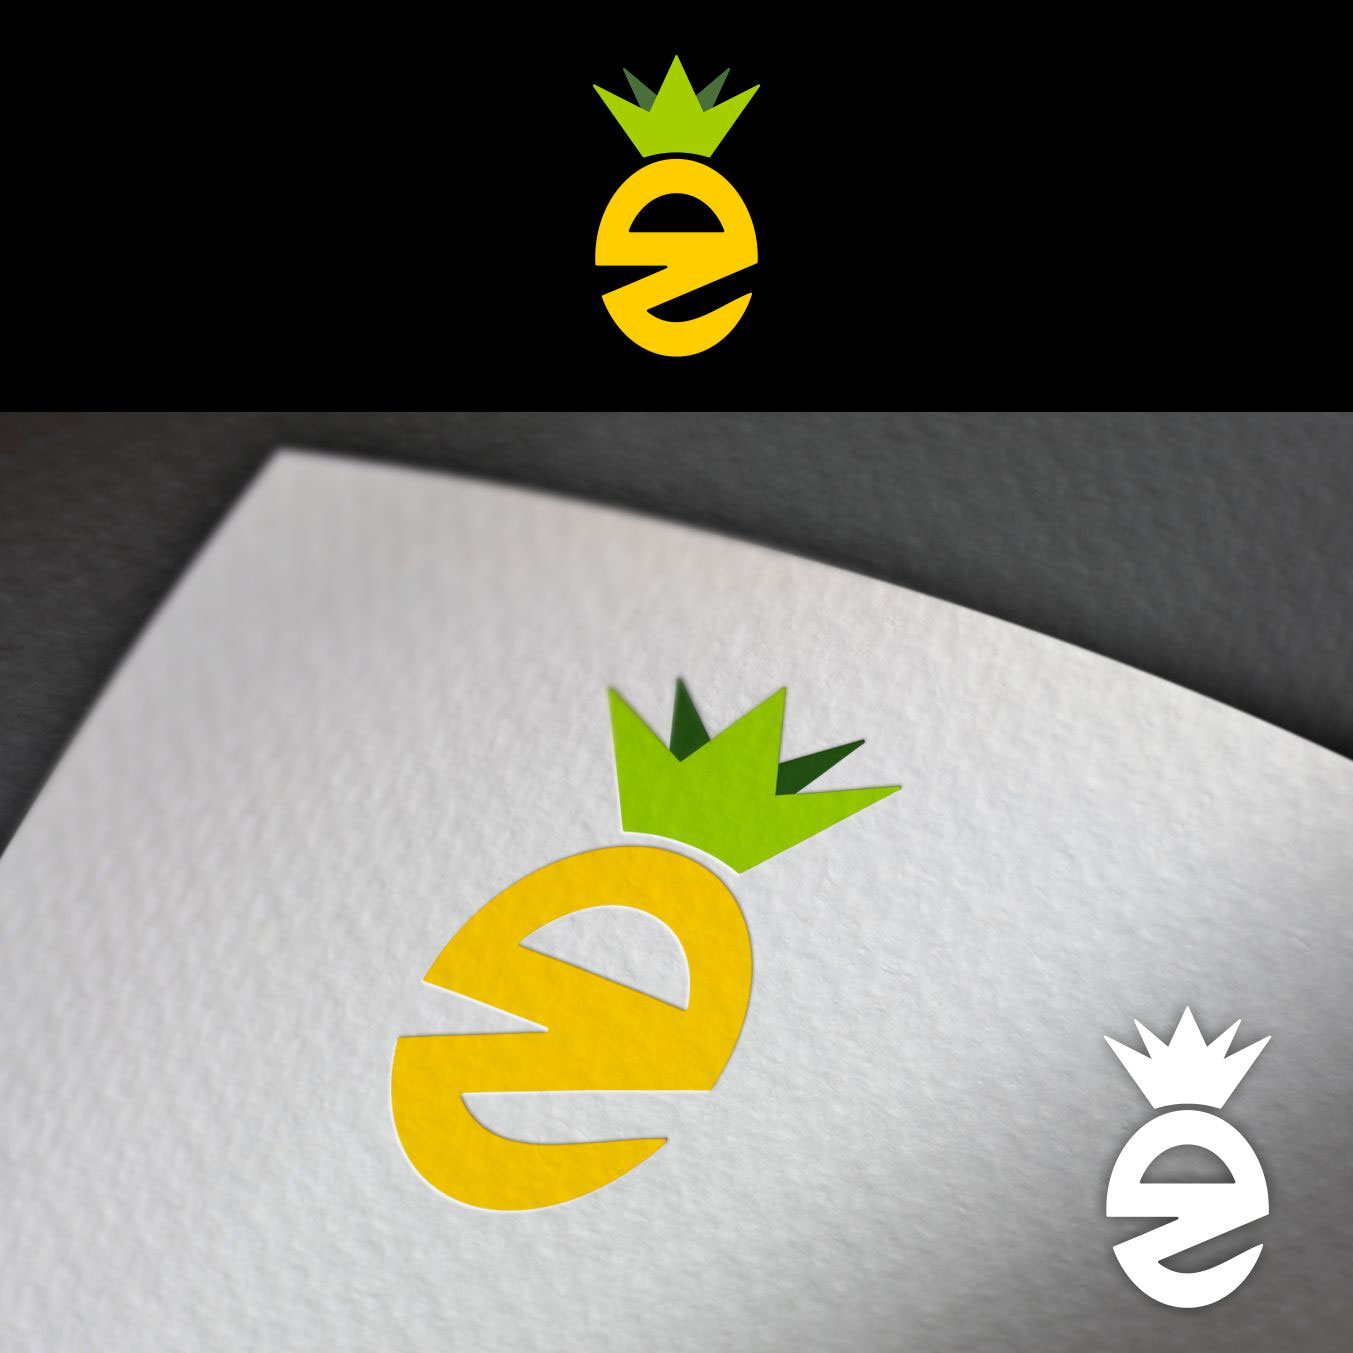 33 Sweet Pineapple Logo Ideas To Funk Up Your Brand